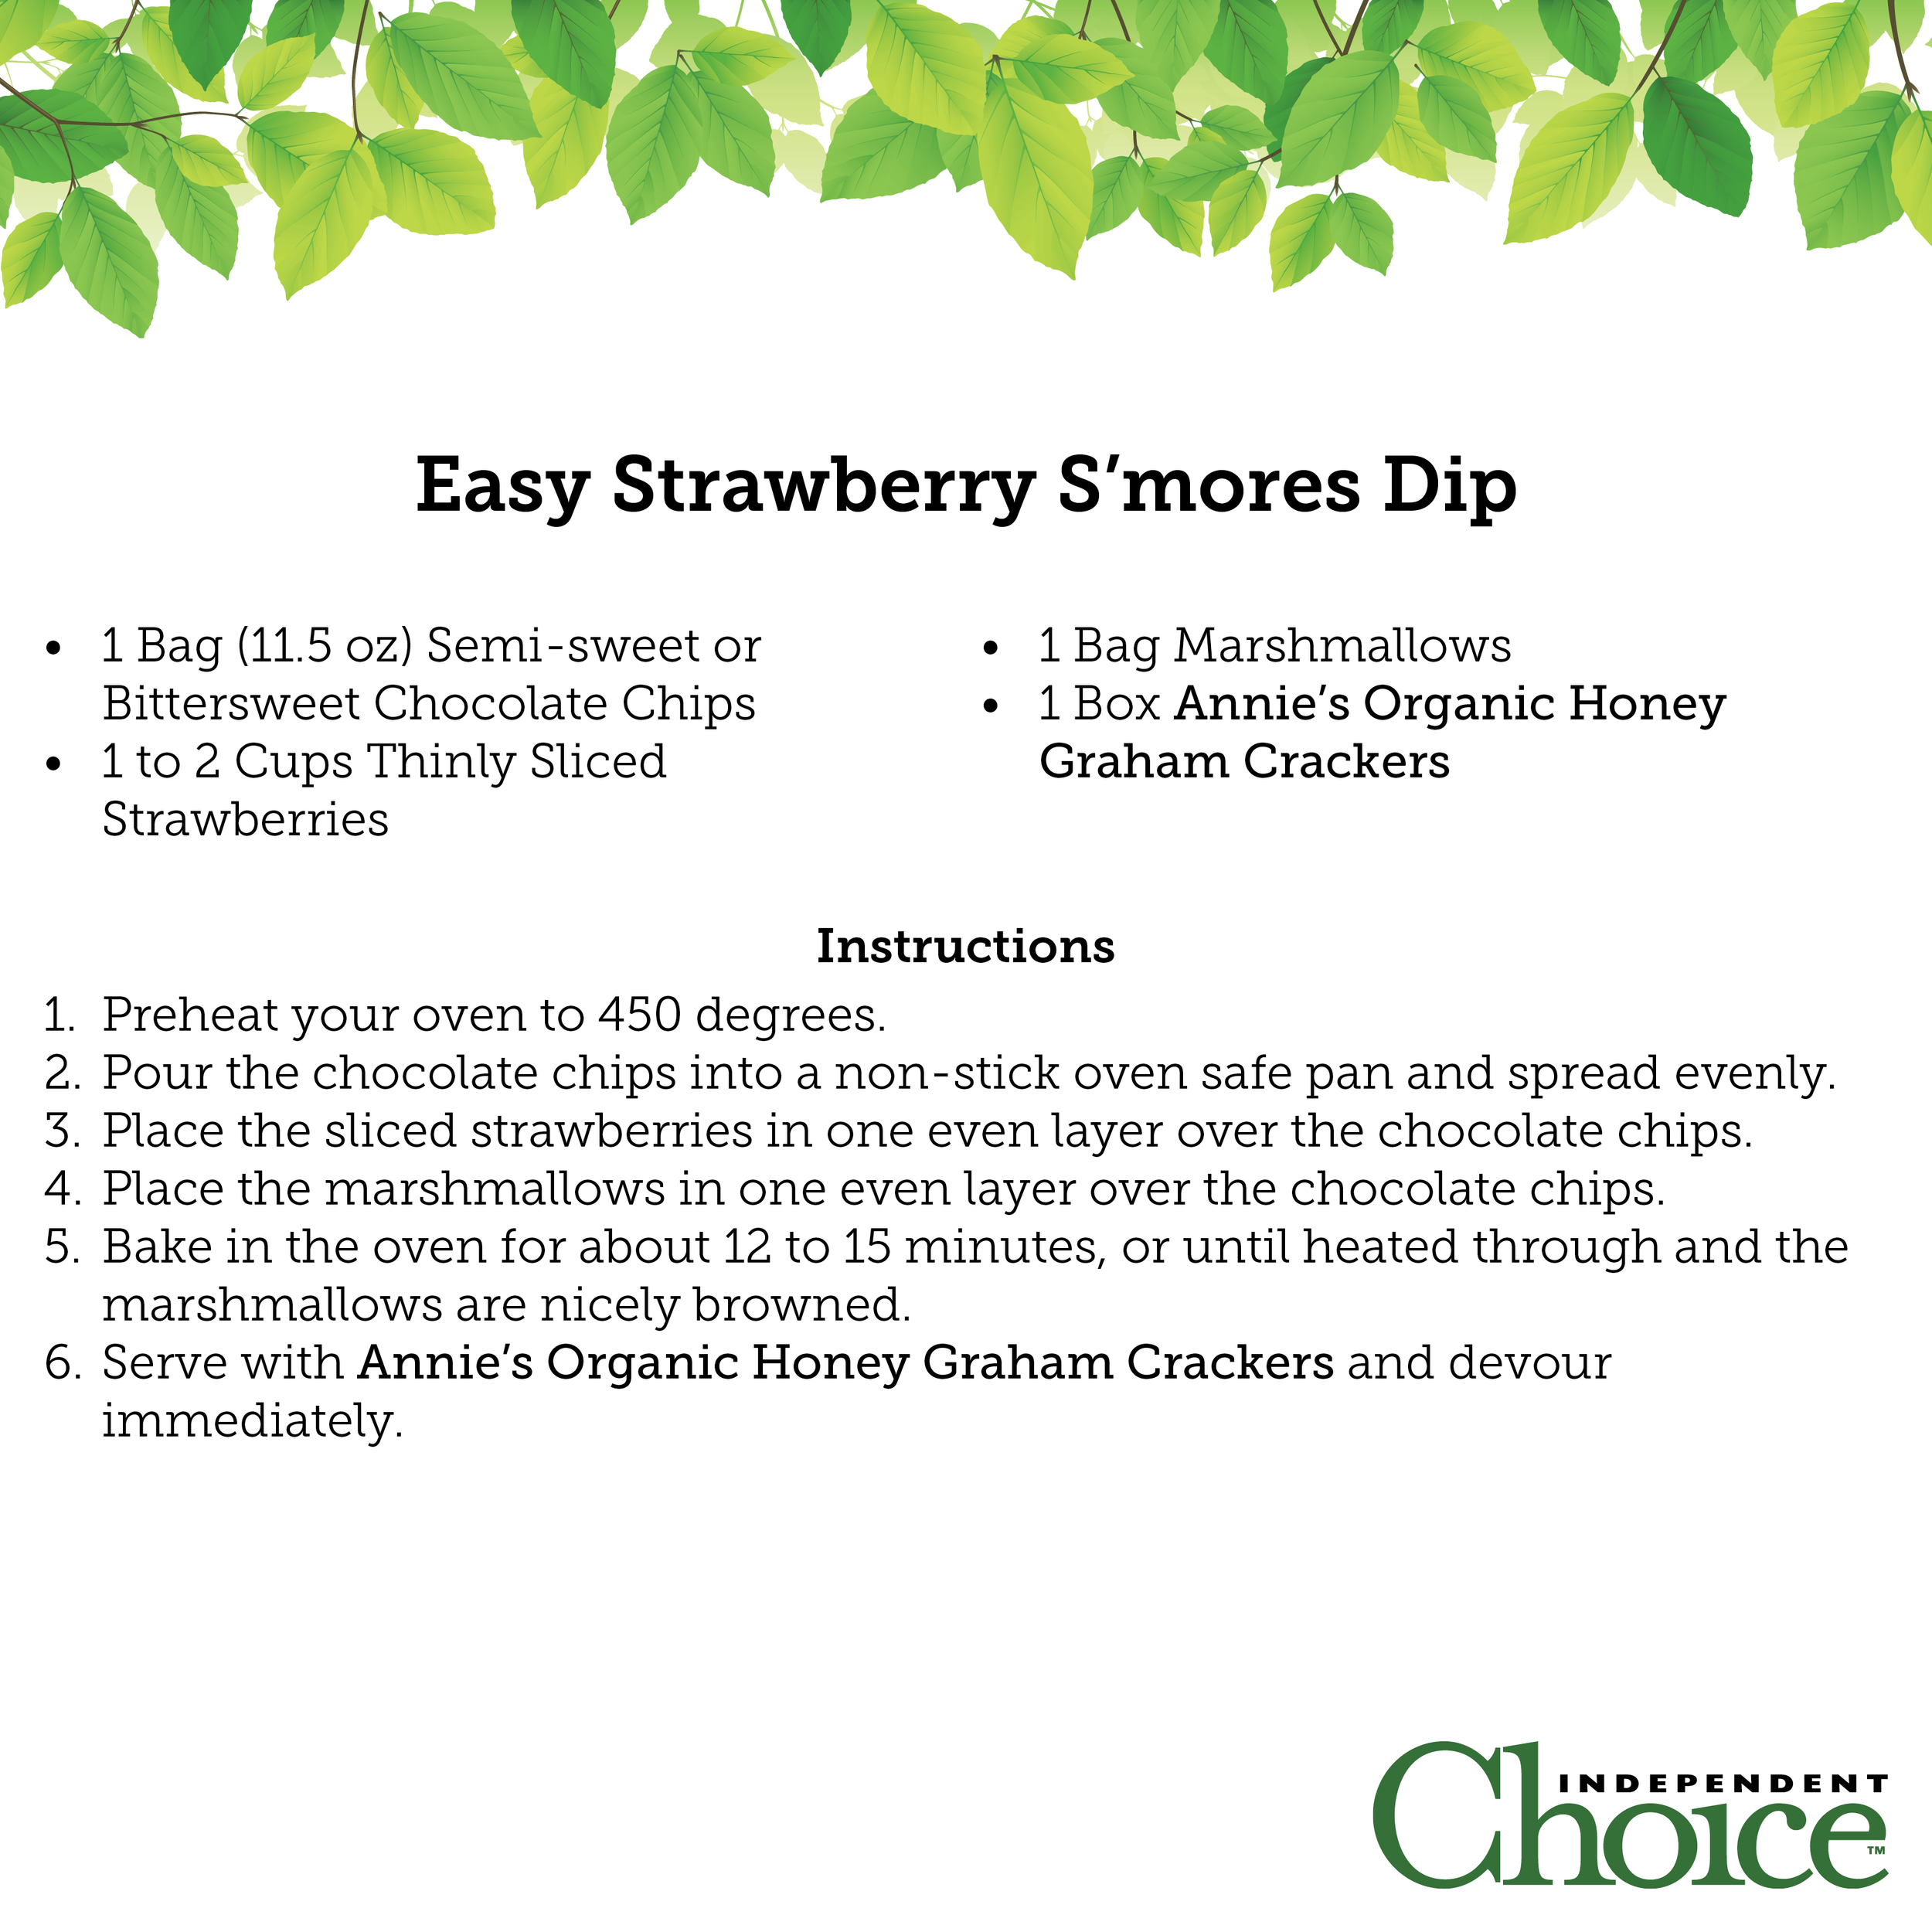 Easy Strawberry S'mores Dip.png